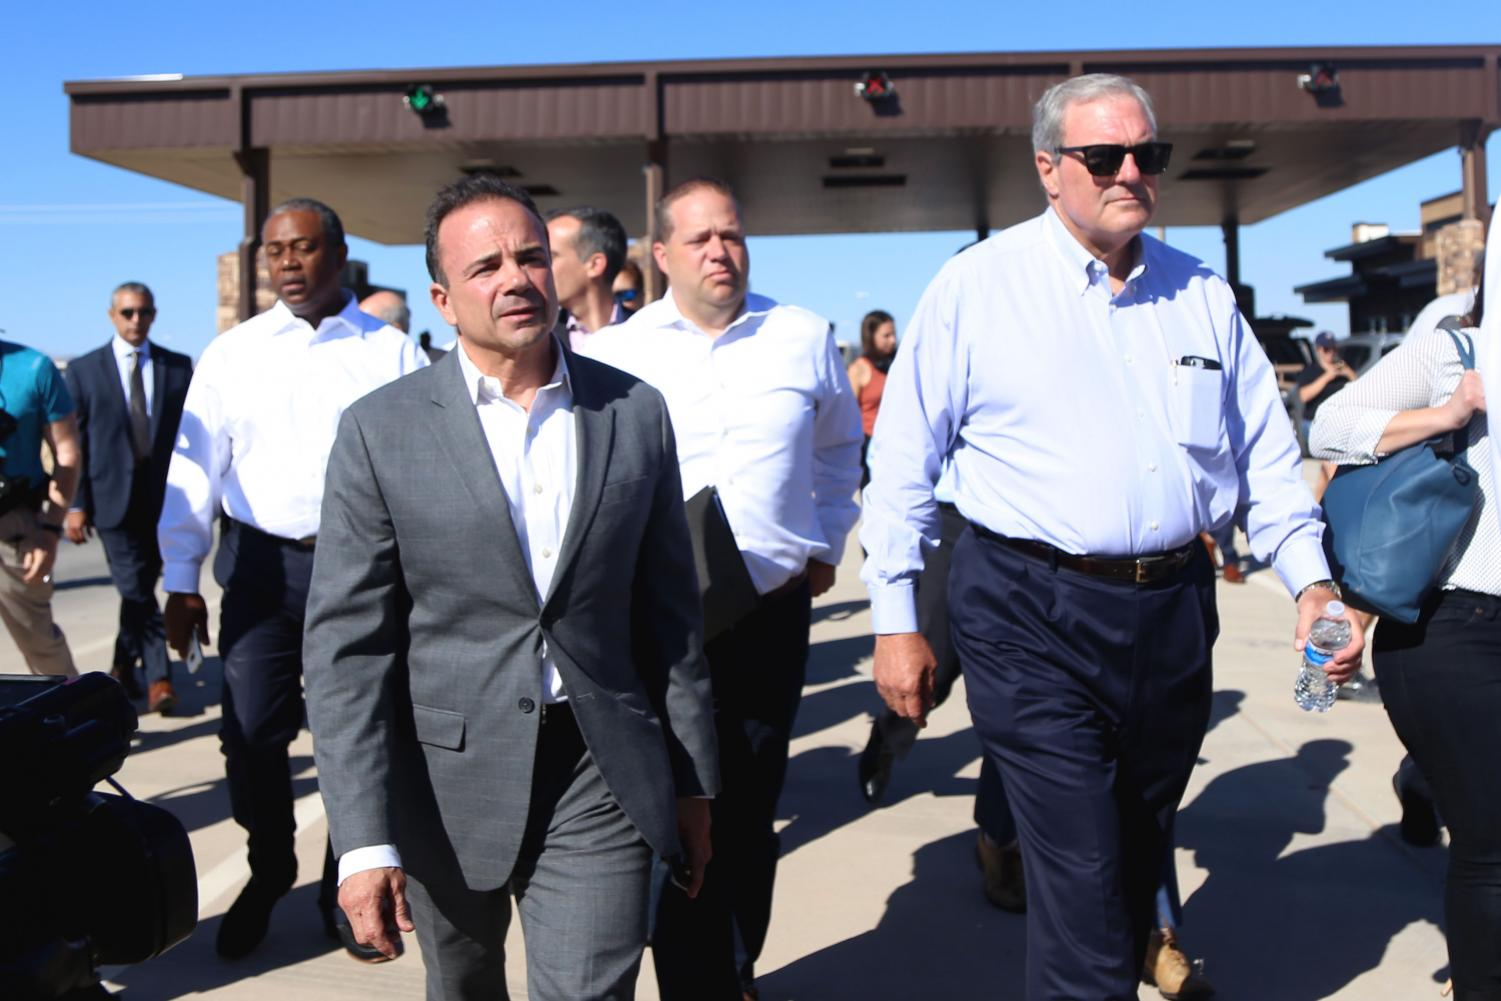 U.S.+mayors+meet+to+protest+at+the+border